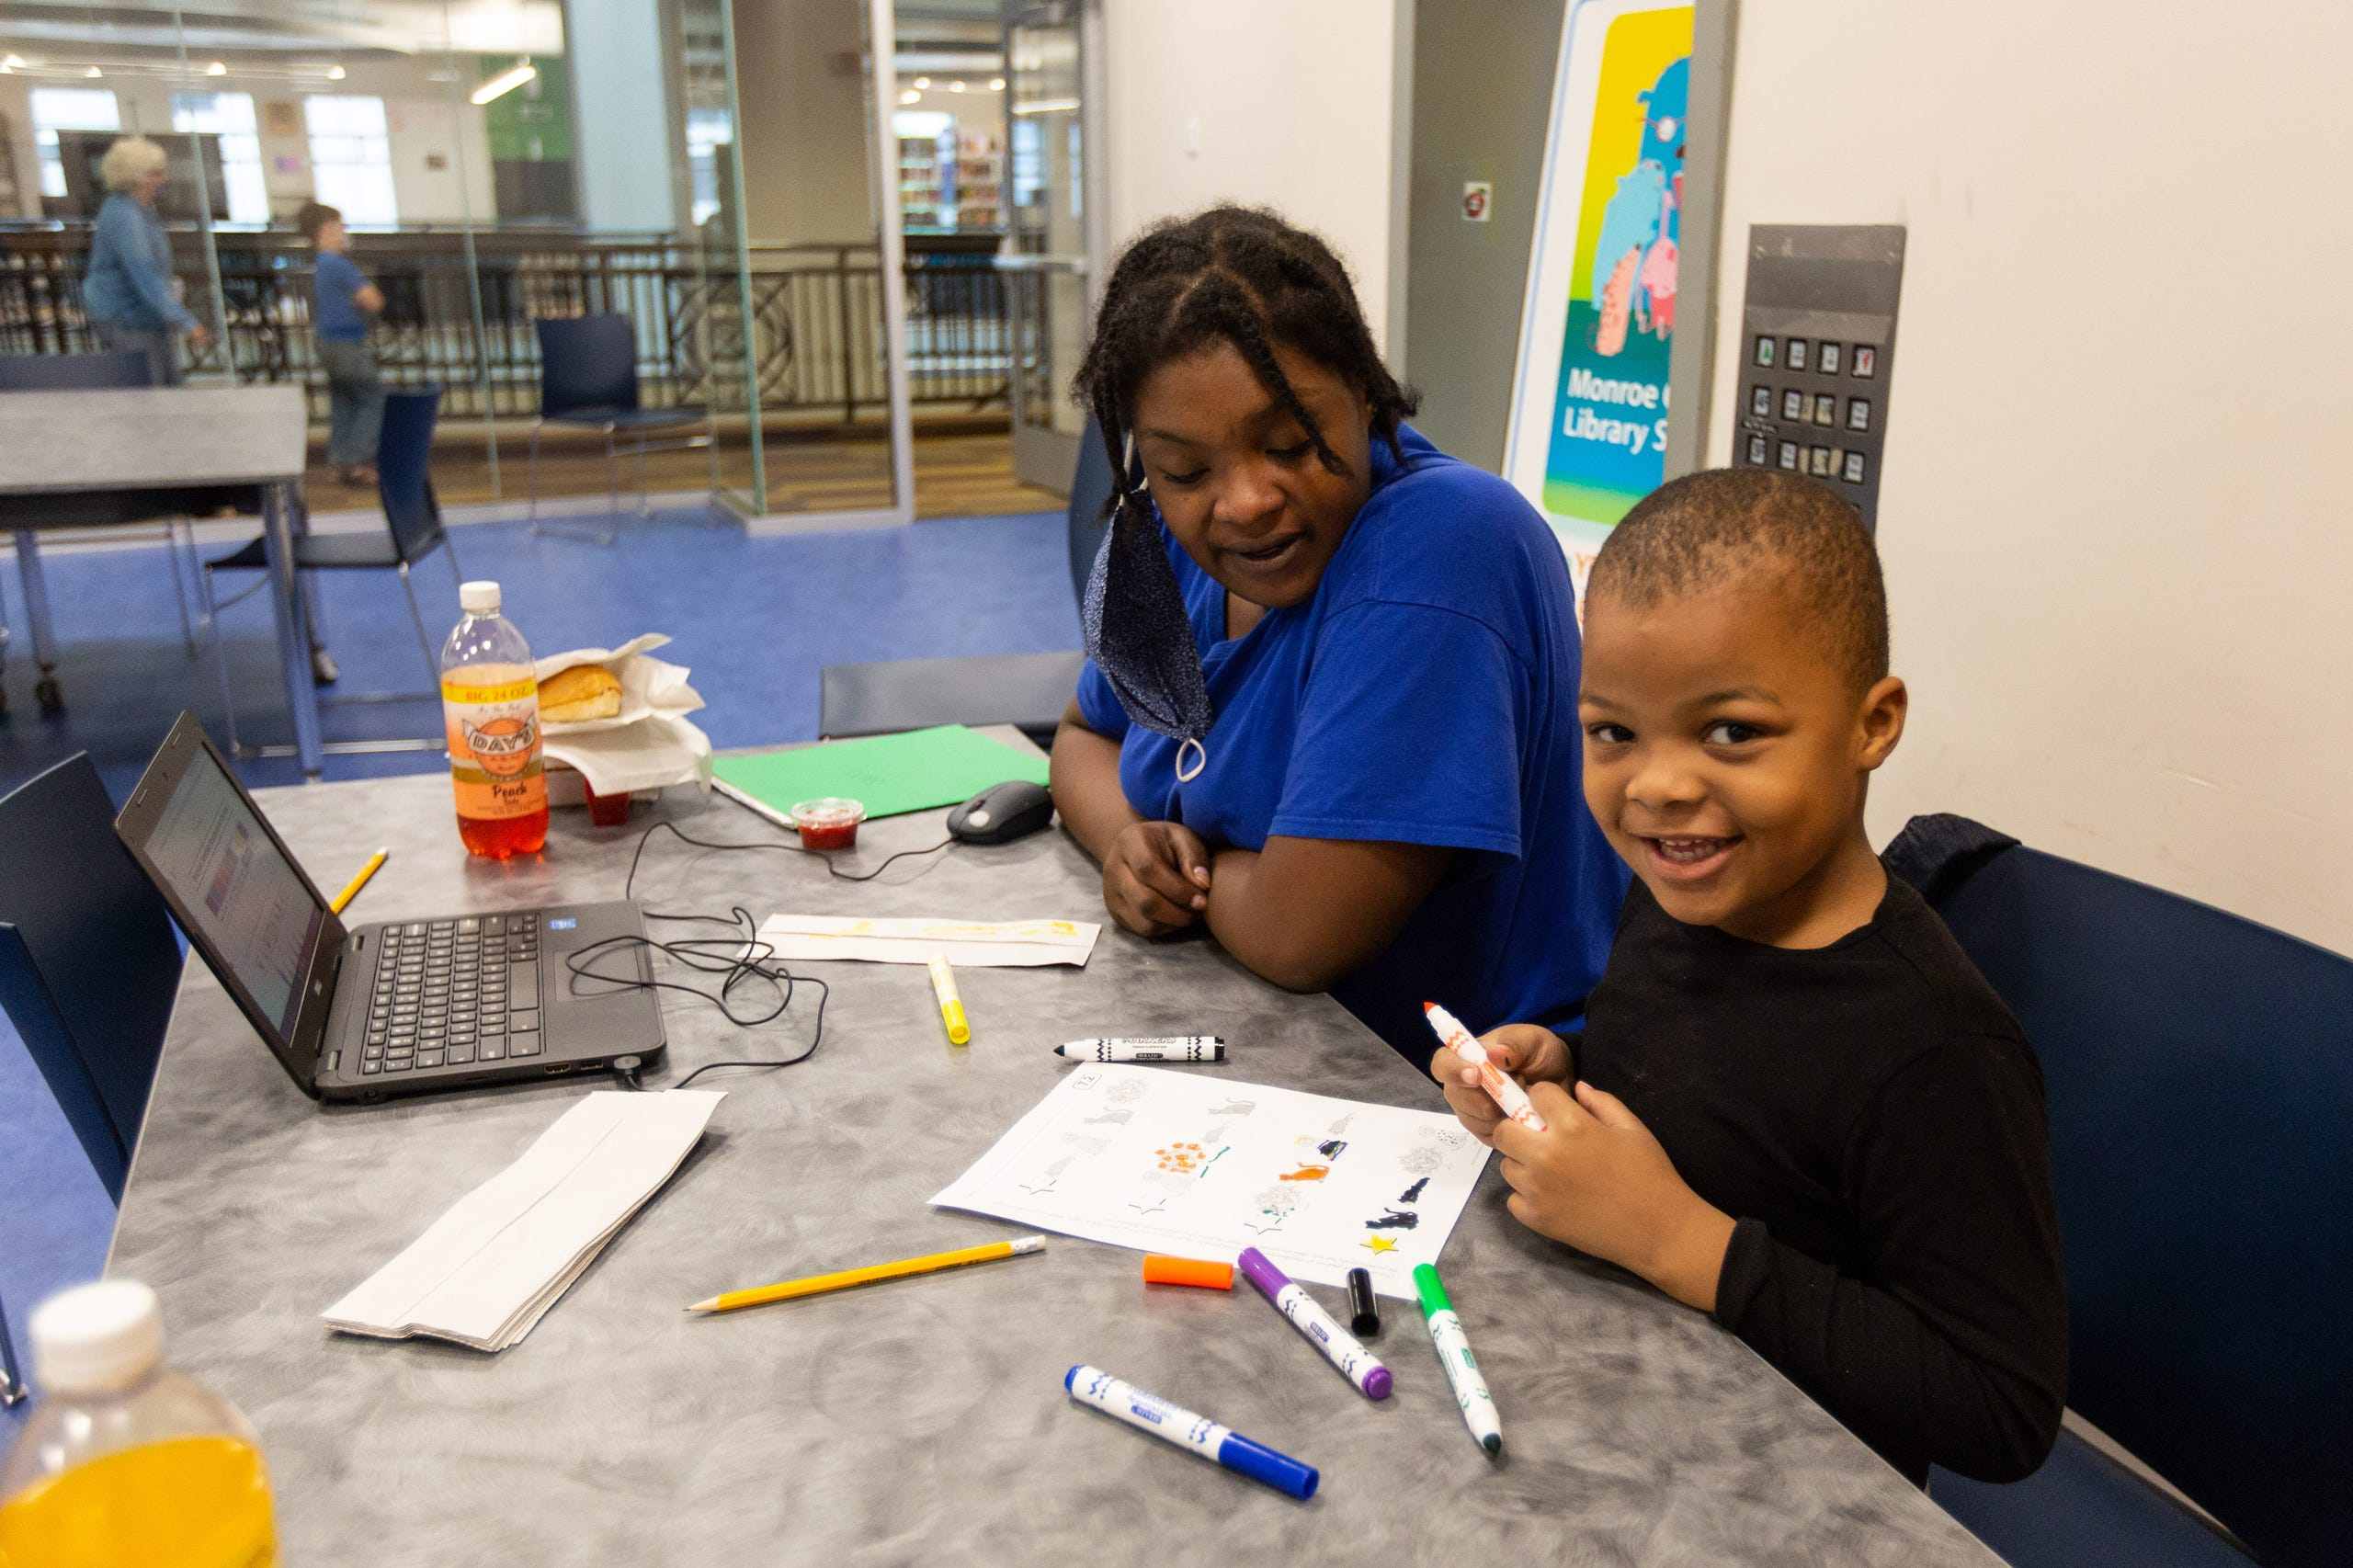 Trachelle Bivins and her 5-year-old son, Ondrae Florence, complete his school work together at Central Library of Rochester on Tuesday, Sept. 29, 2020. Ondrae and his mom have internet at home, but choose to come to the library because it creates a better learning environment for him.